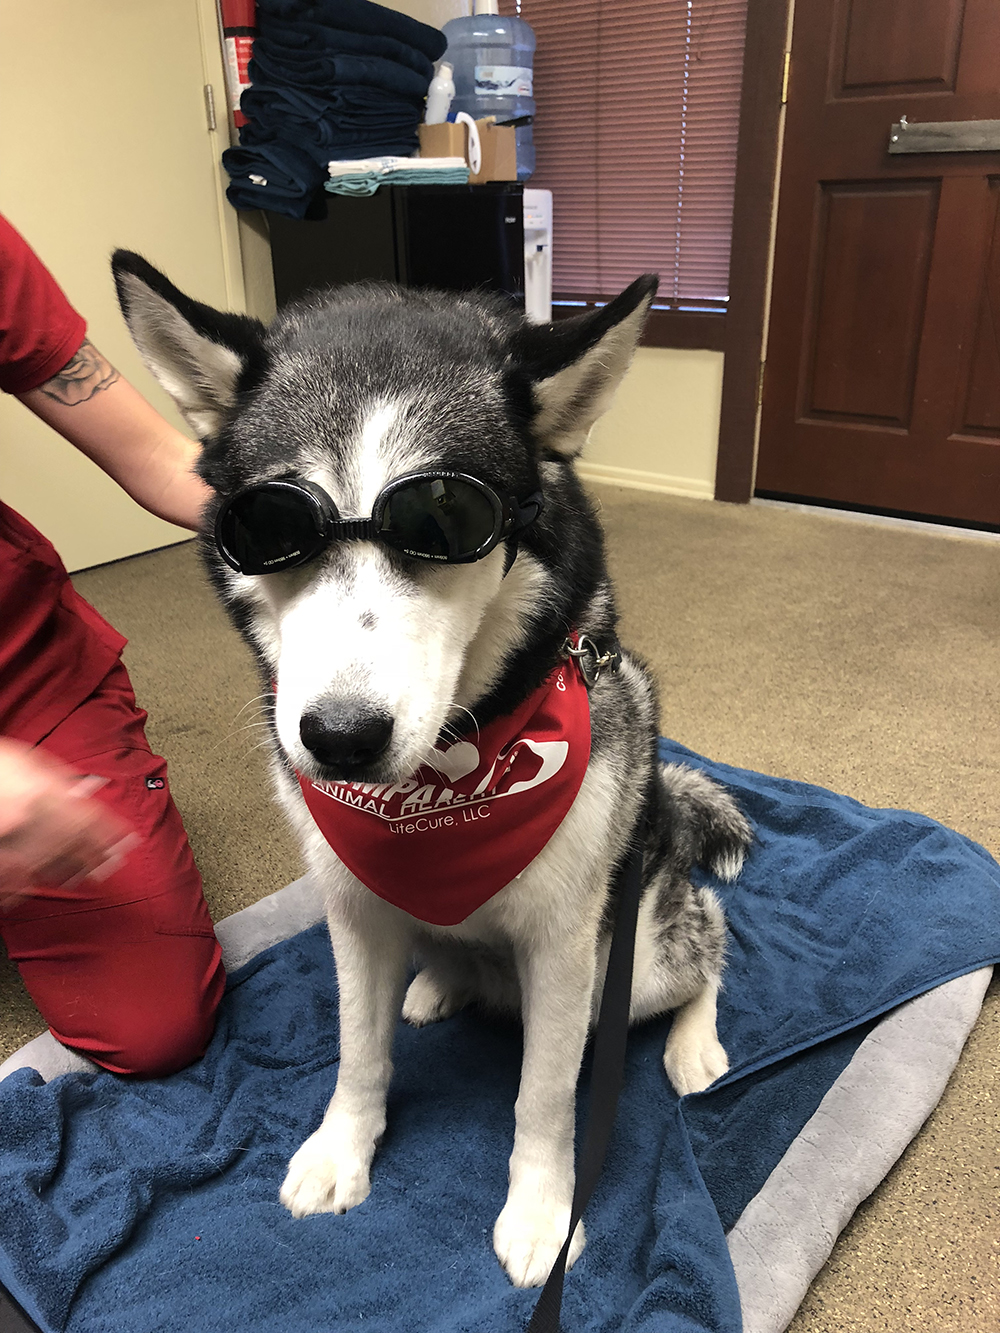 Doggles protect eyes during cold laser treatment